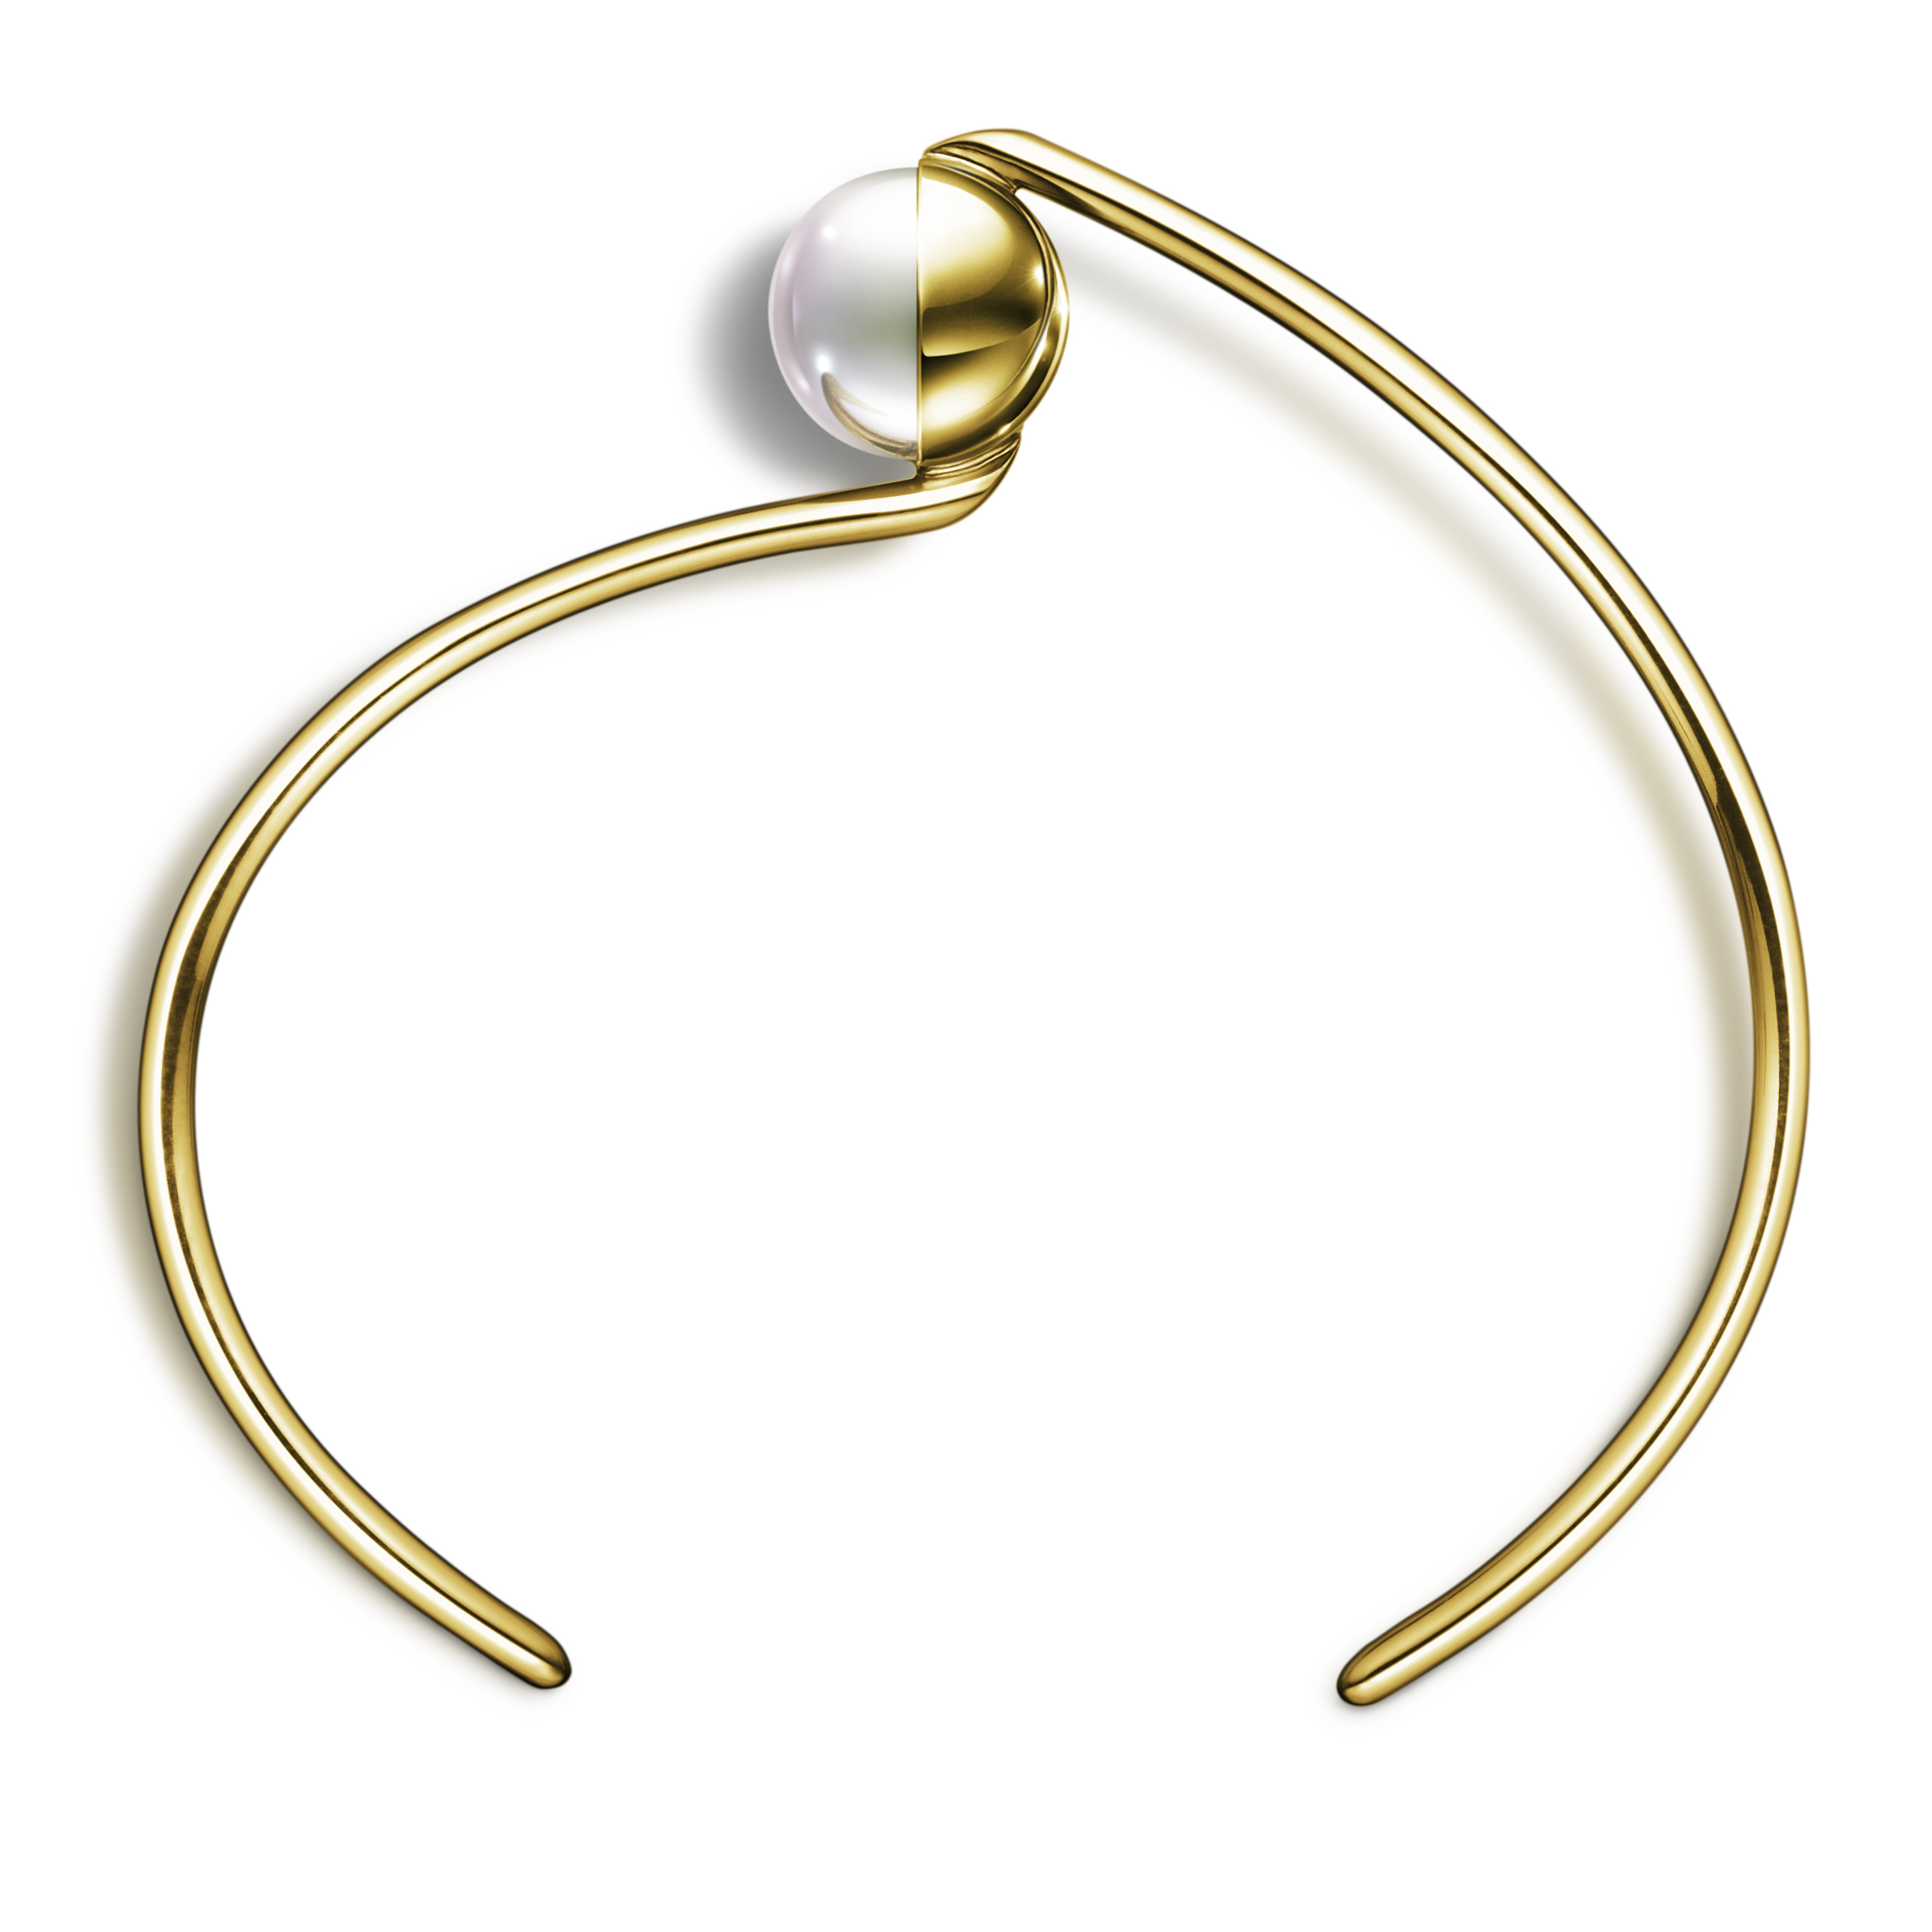 Arlequin Bangle, M/G Tasaki (Image Courtesy of Melanie Georgacopoulos)